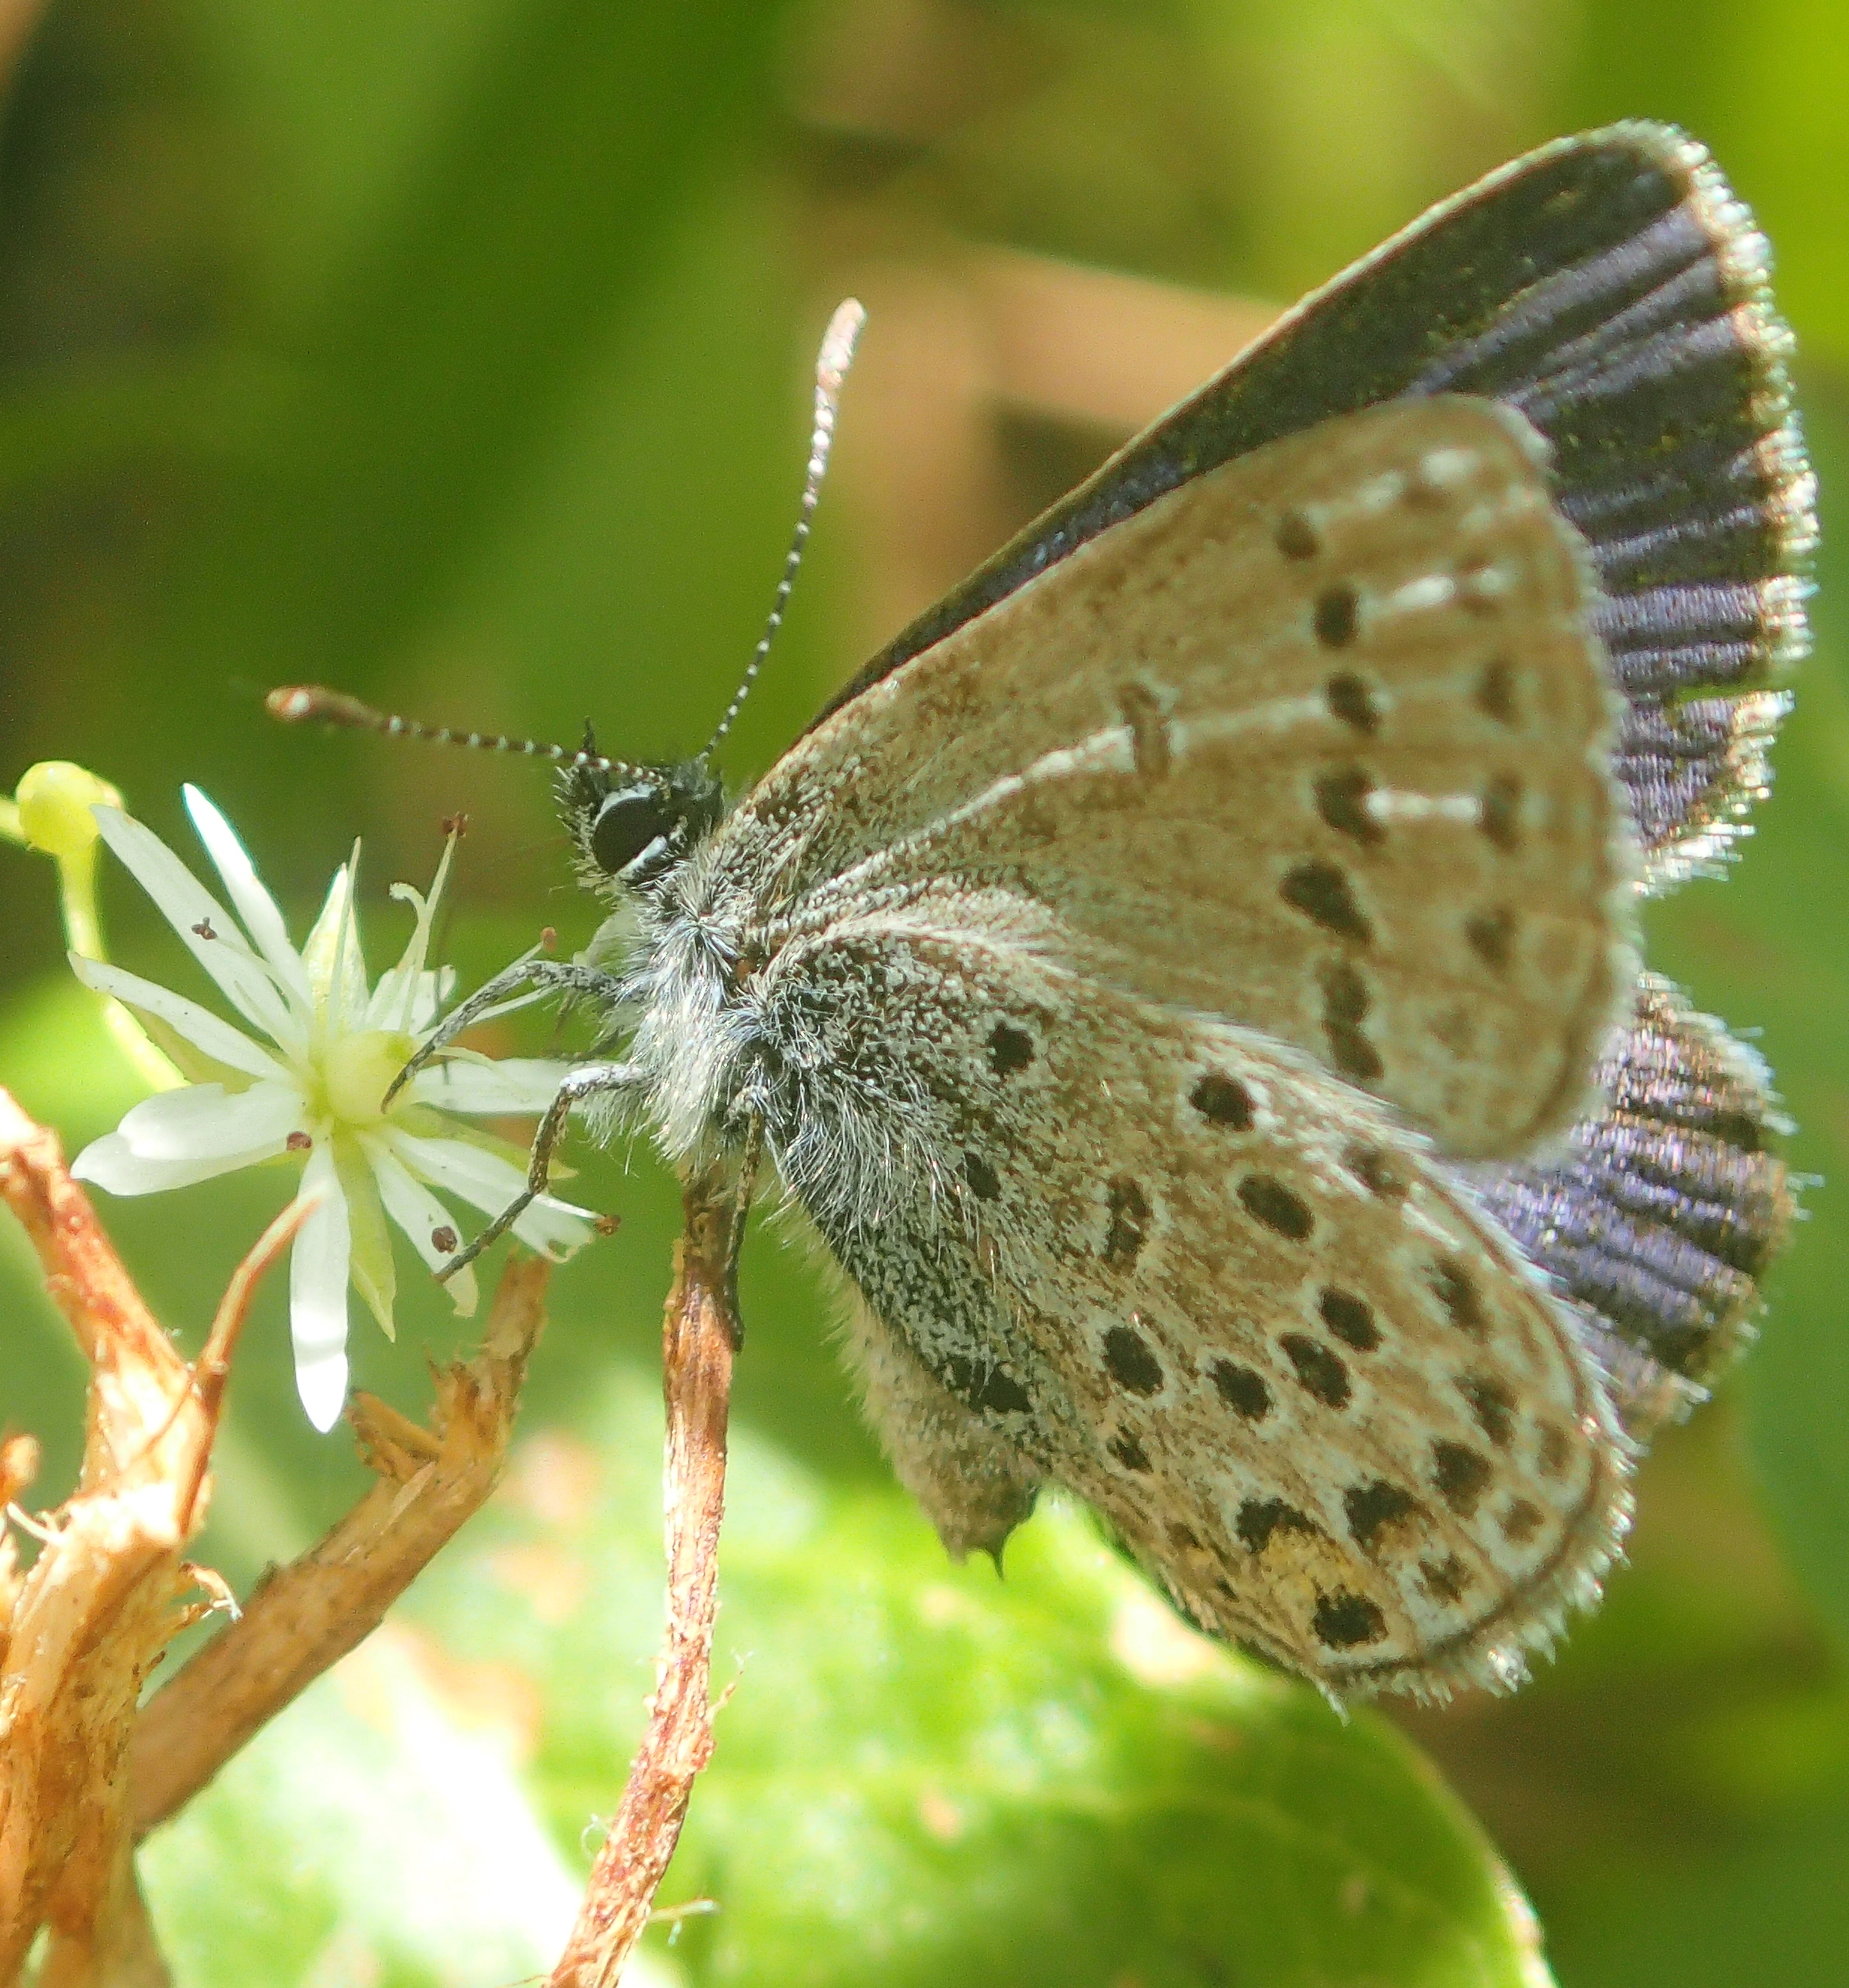 A close-up of a cranberry blue butterfly on a branch.